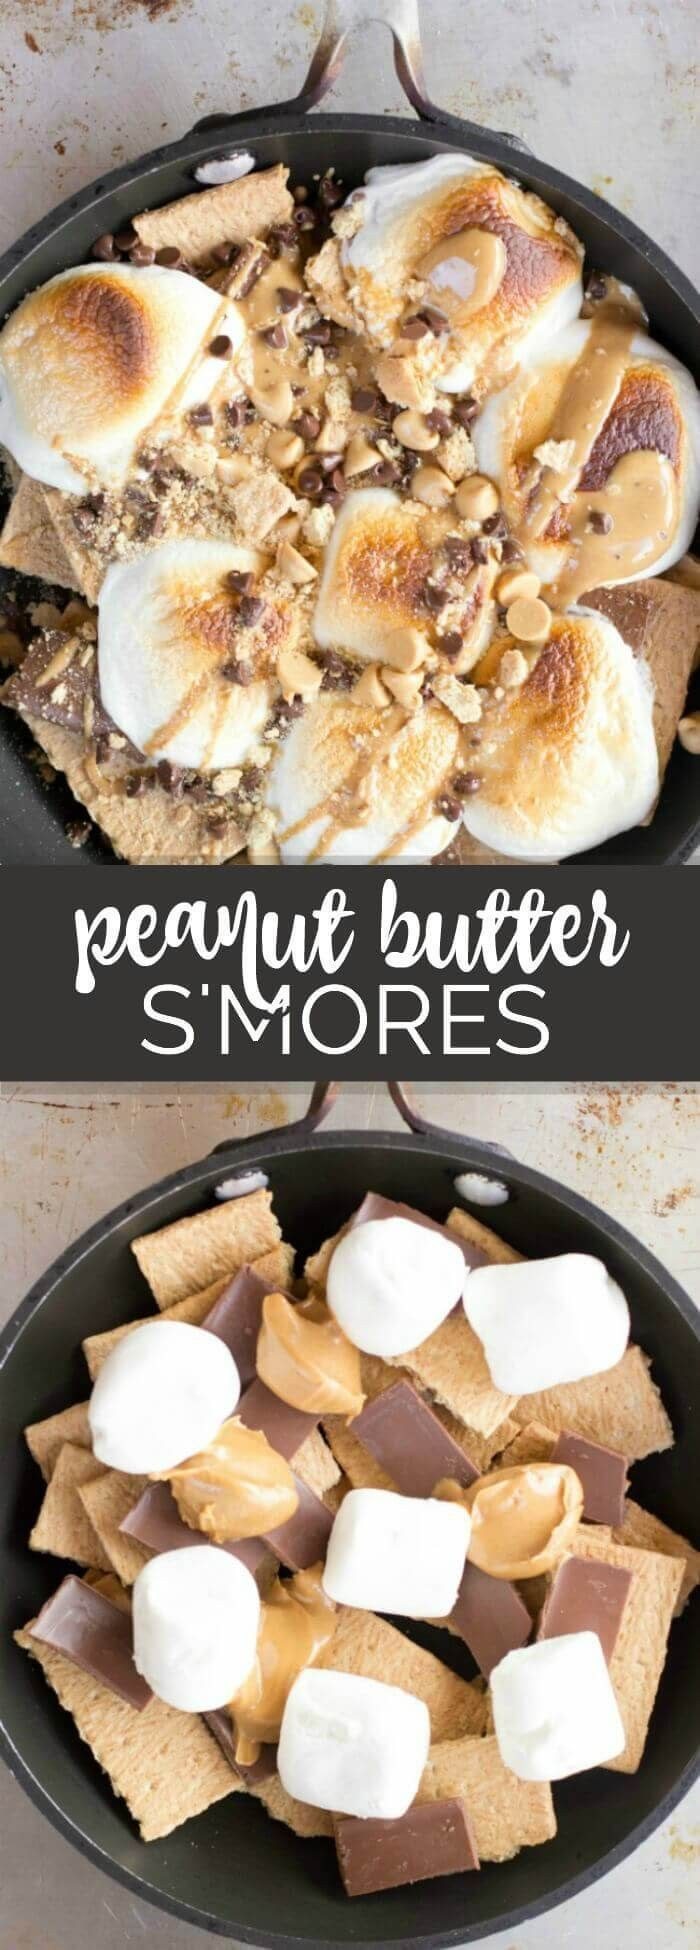 Chocolate Peanut Butter Oven S'mores Recipe GetCampfiredUp AD